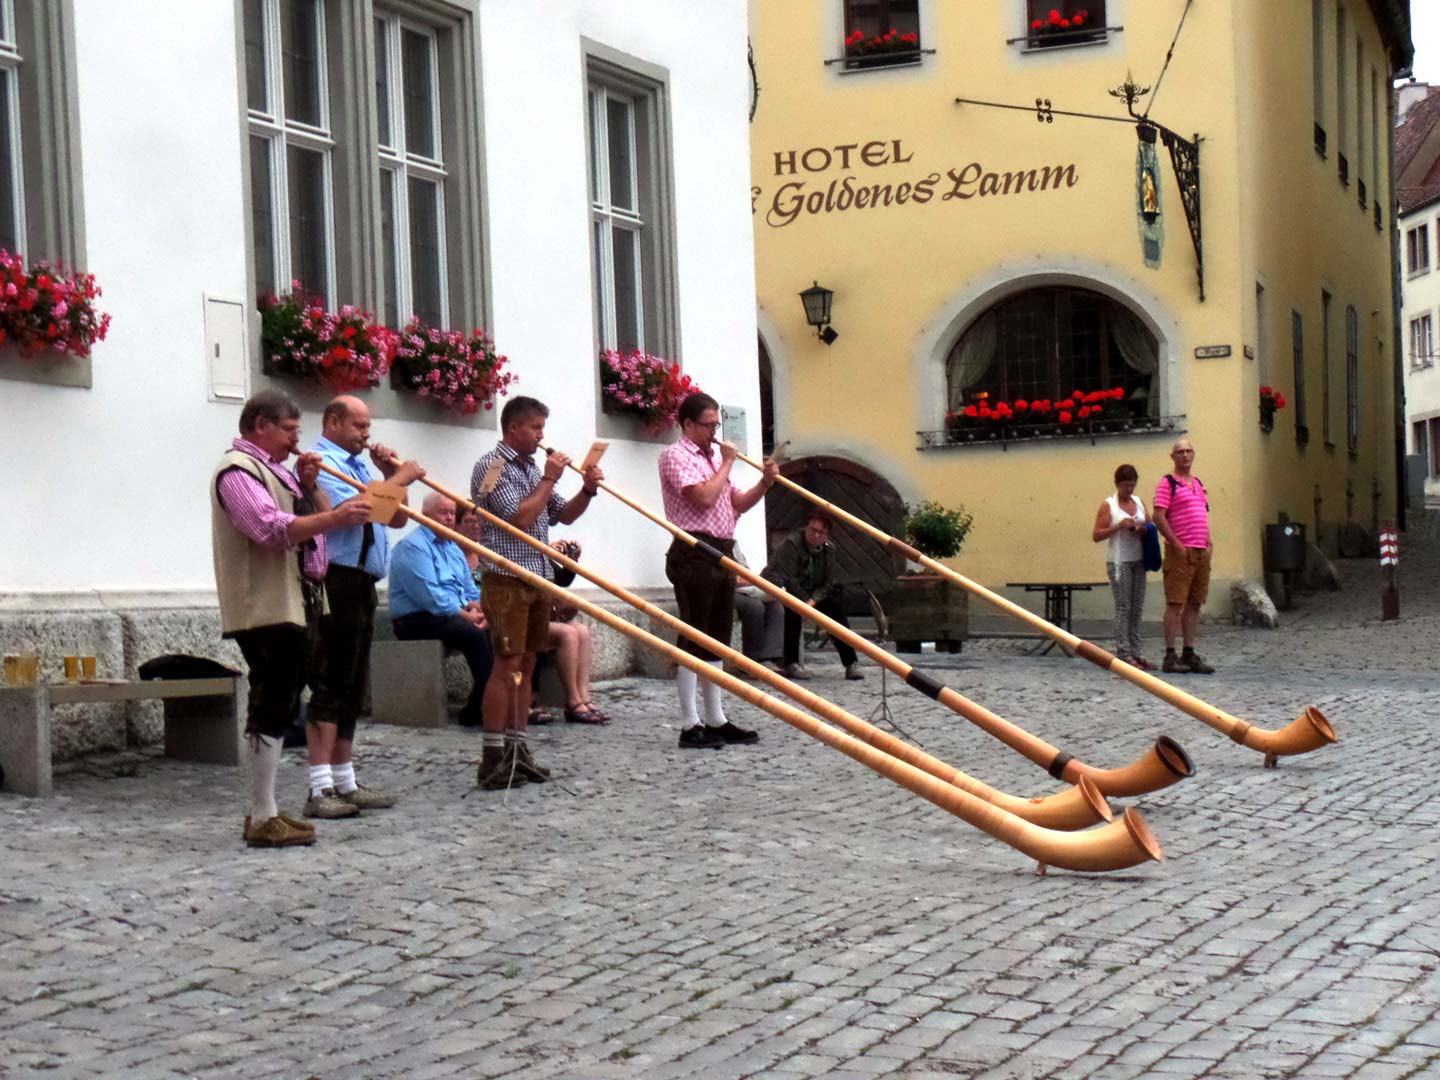 Rothenburg ob der Tauber!